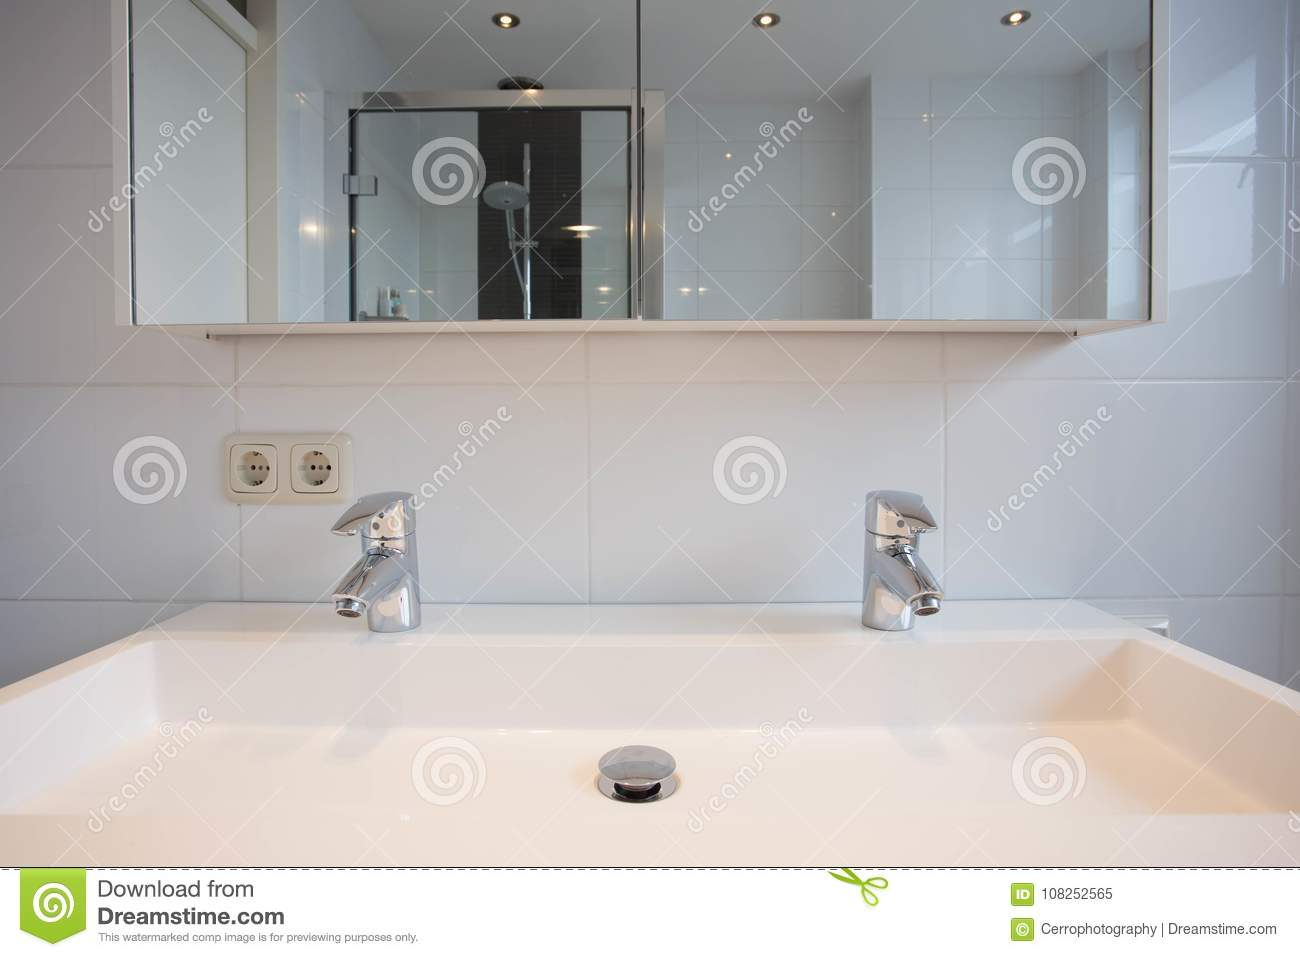 New Bathroom Sink With Two Silver Taps Stock Image - Image of ...